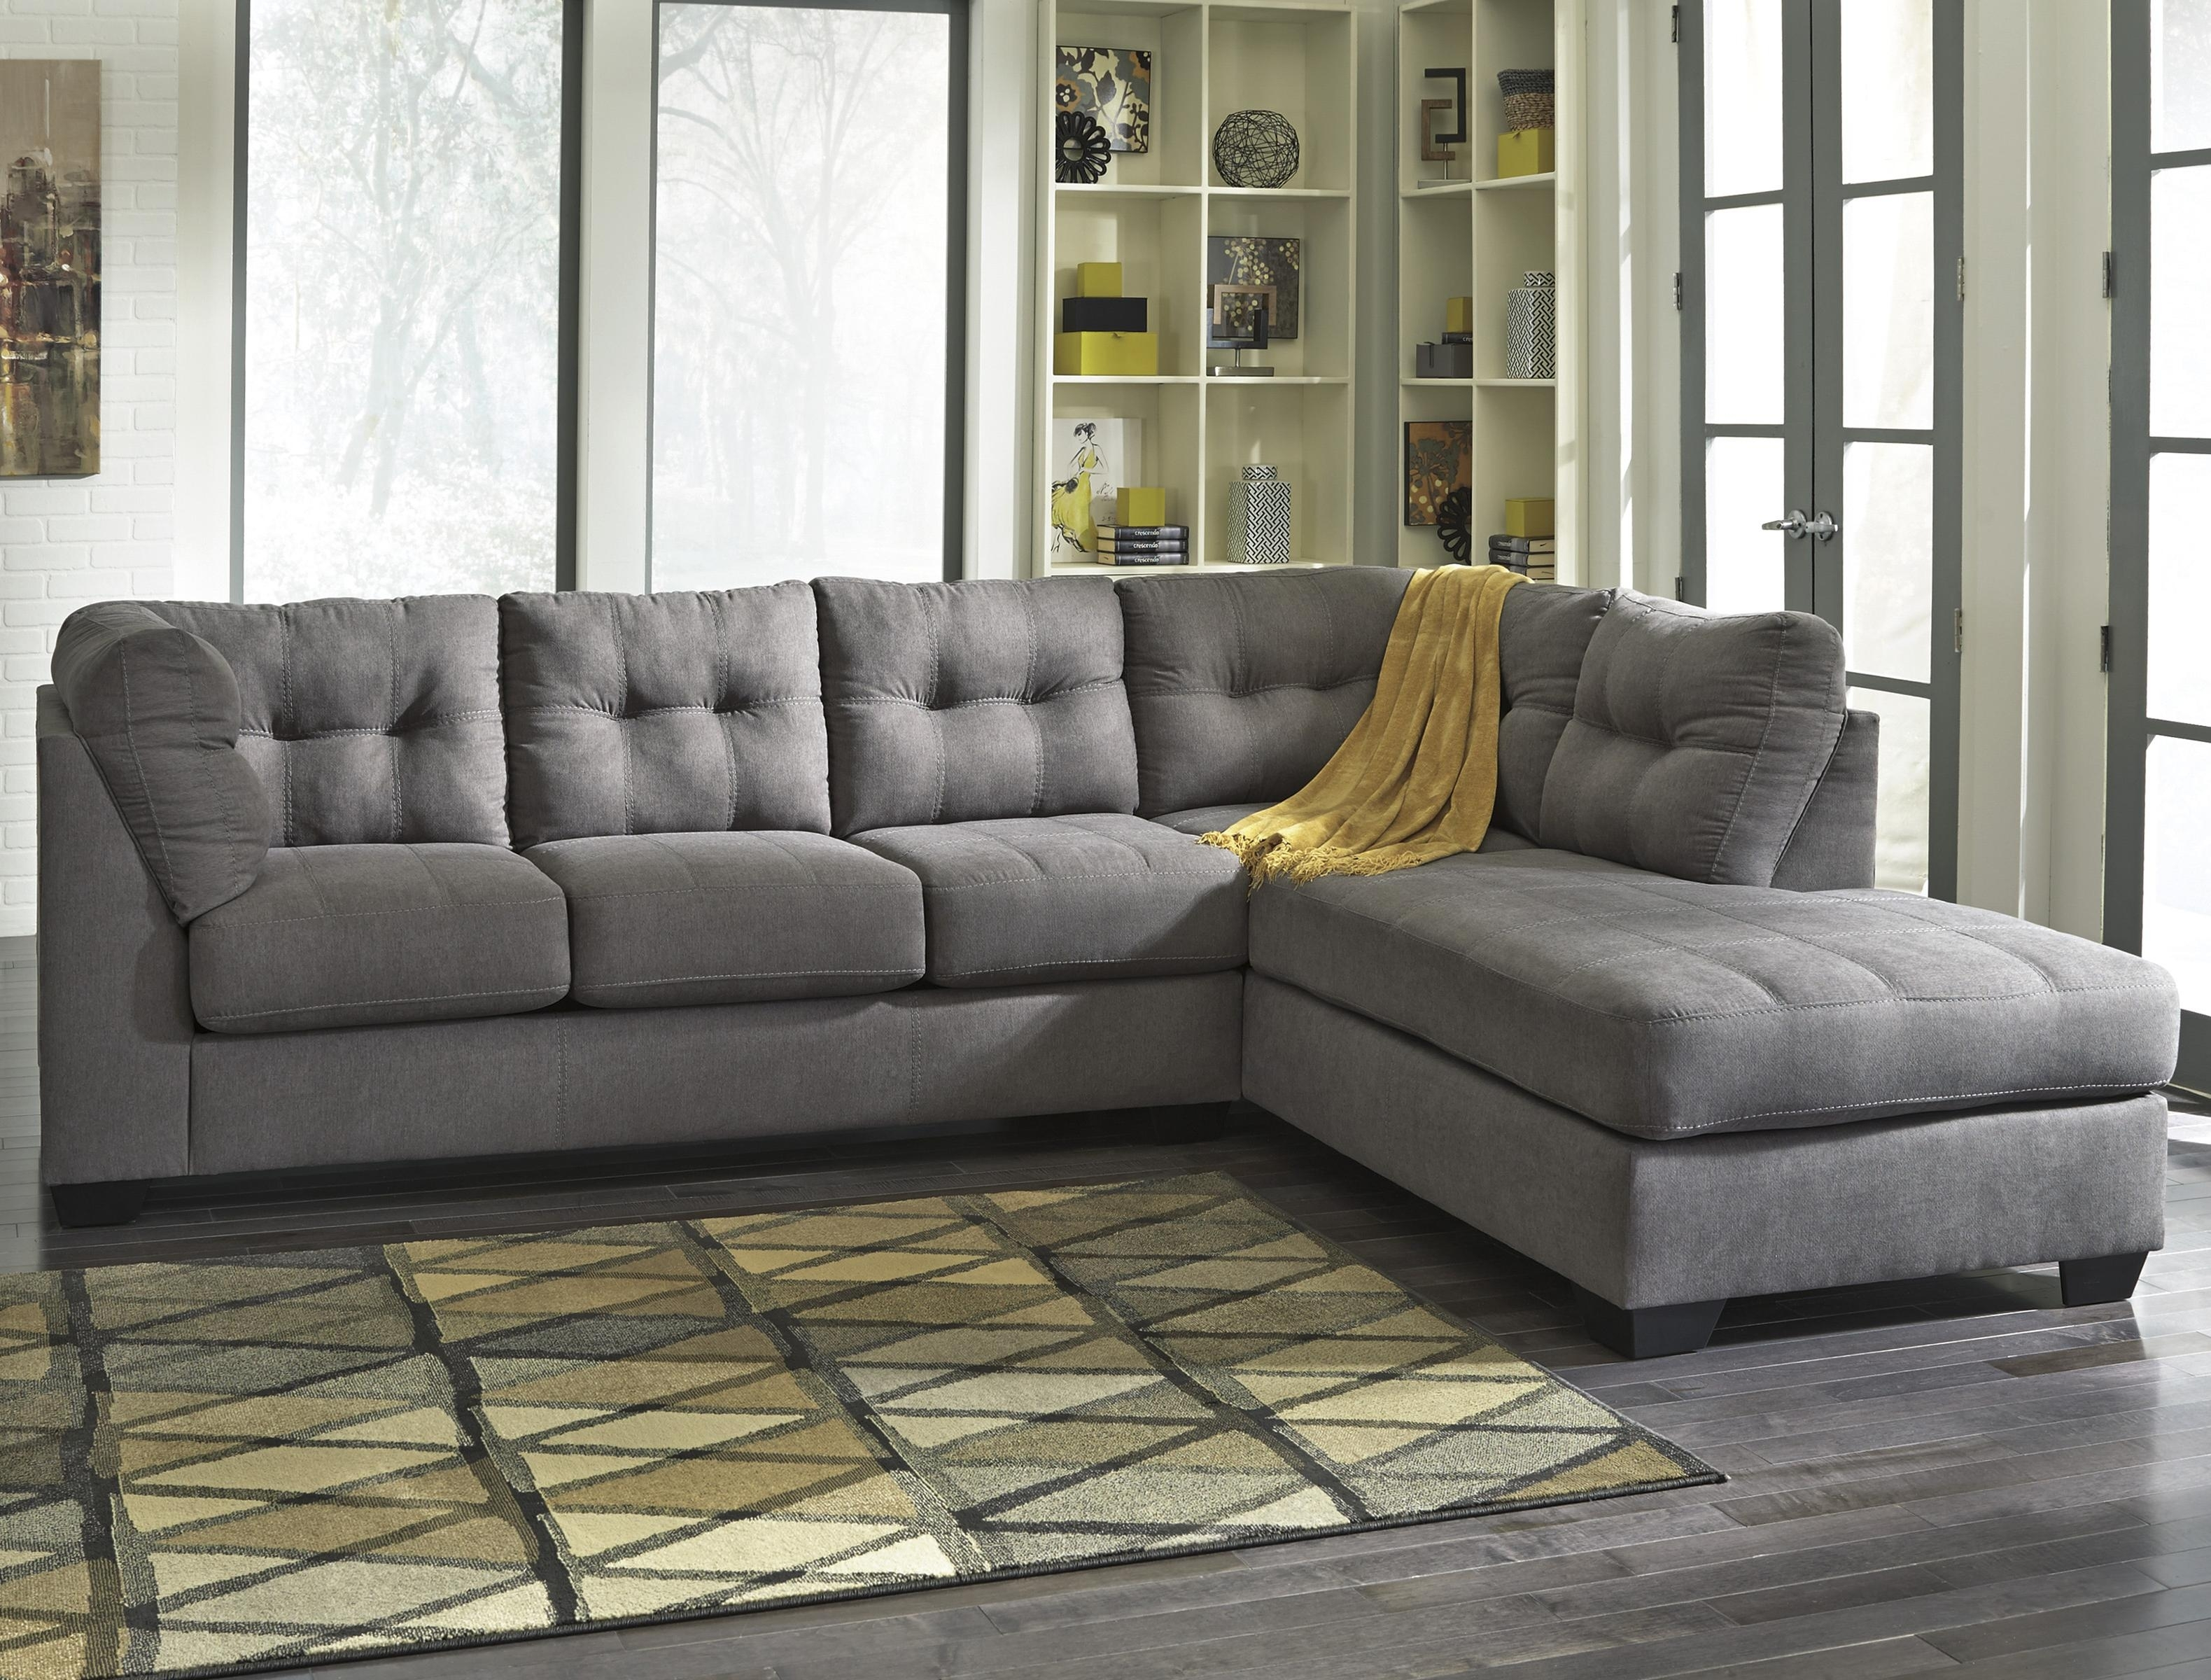 Benchcraft Maier – Charcoal 2 Piece Sectional W/ Sleeper Sofa Regarding Arrowmask 2 Piece Sectionals With Sleeper & Left Facing Chaise (View 2 of 25)